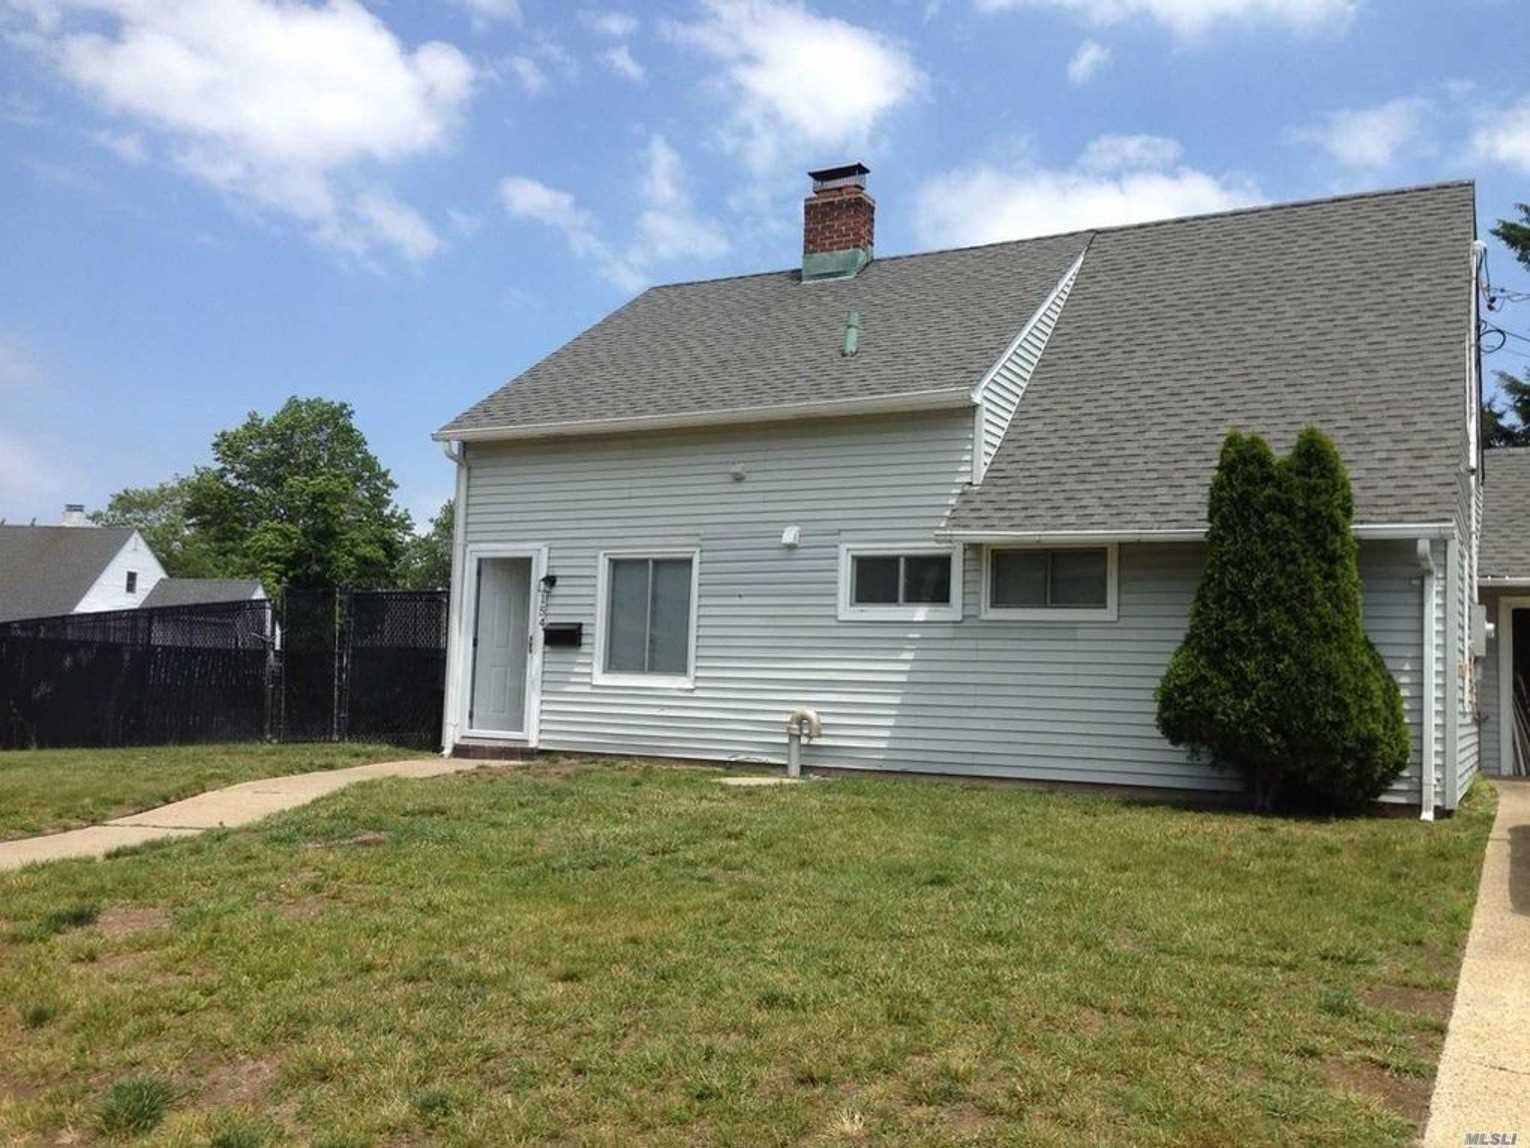 154 Kingfisher Road, Levittown, NY 11756 - MLS#: 3220764